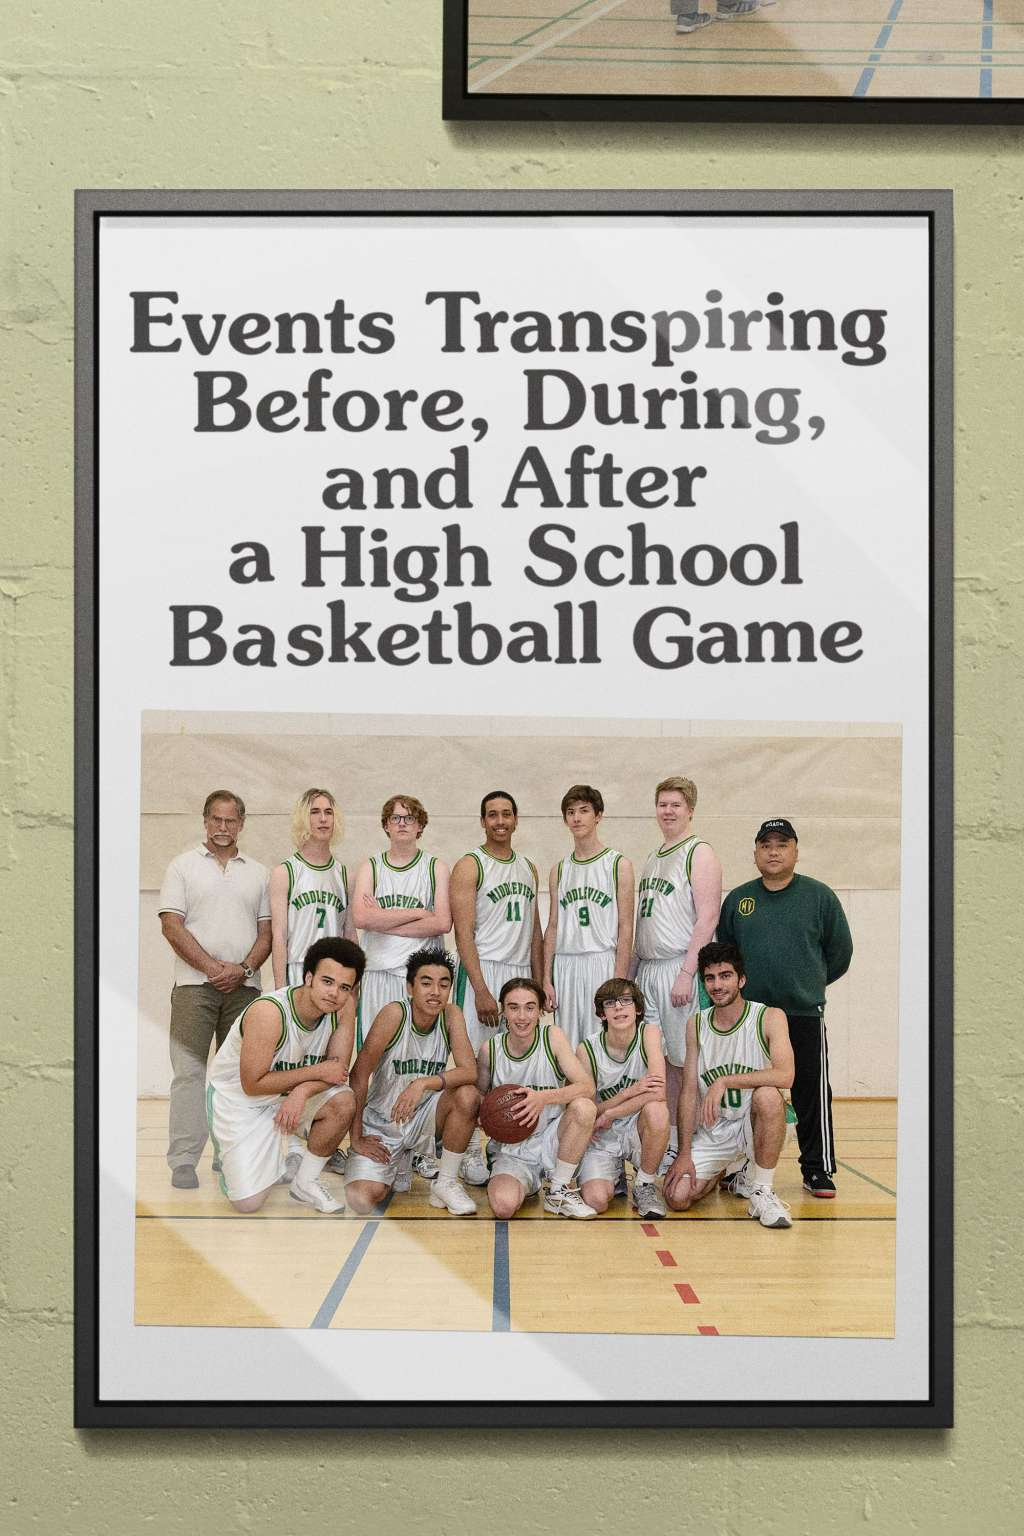 Events Transpiring Before, During, and After a High School Basketball Game kapak